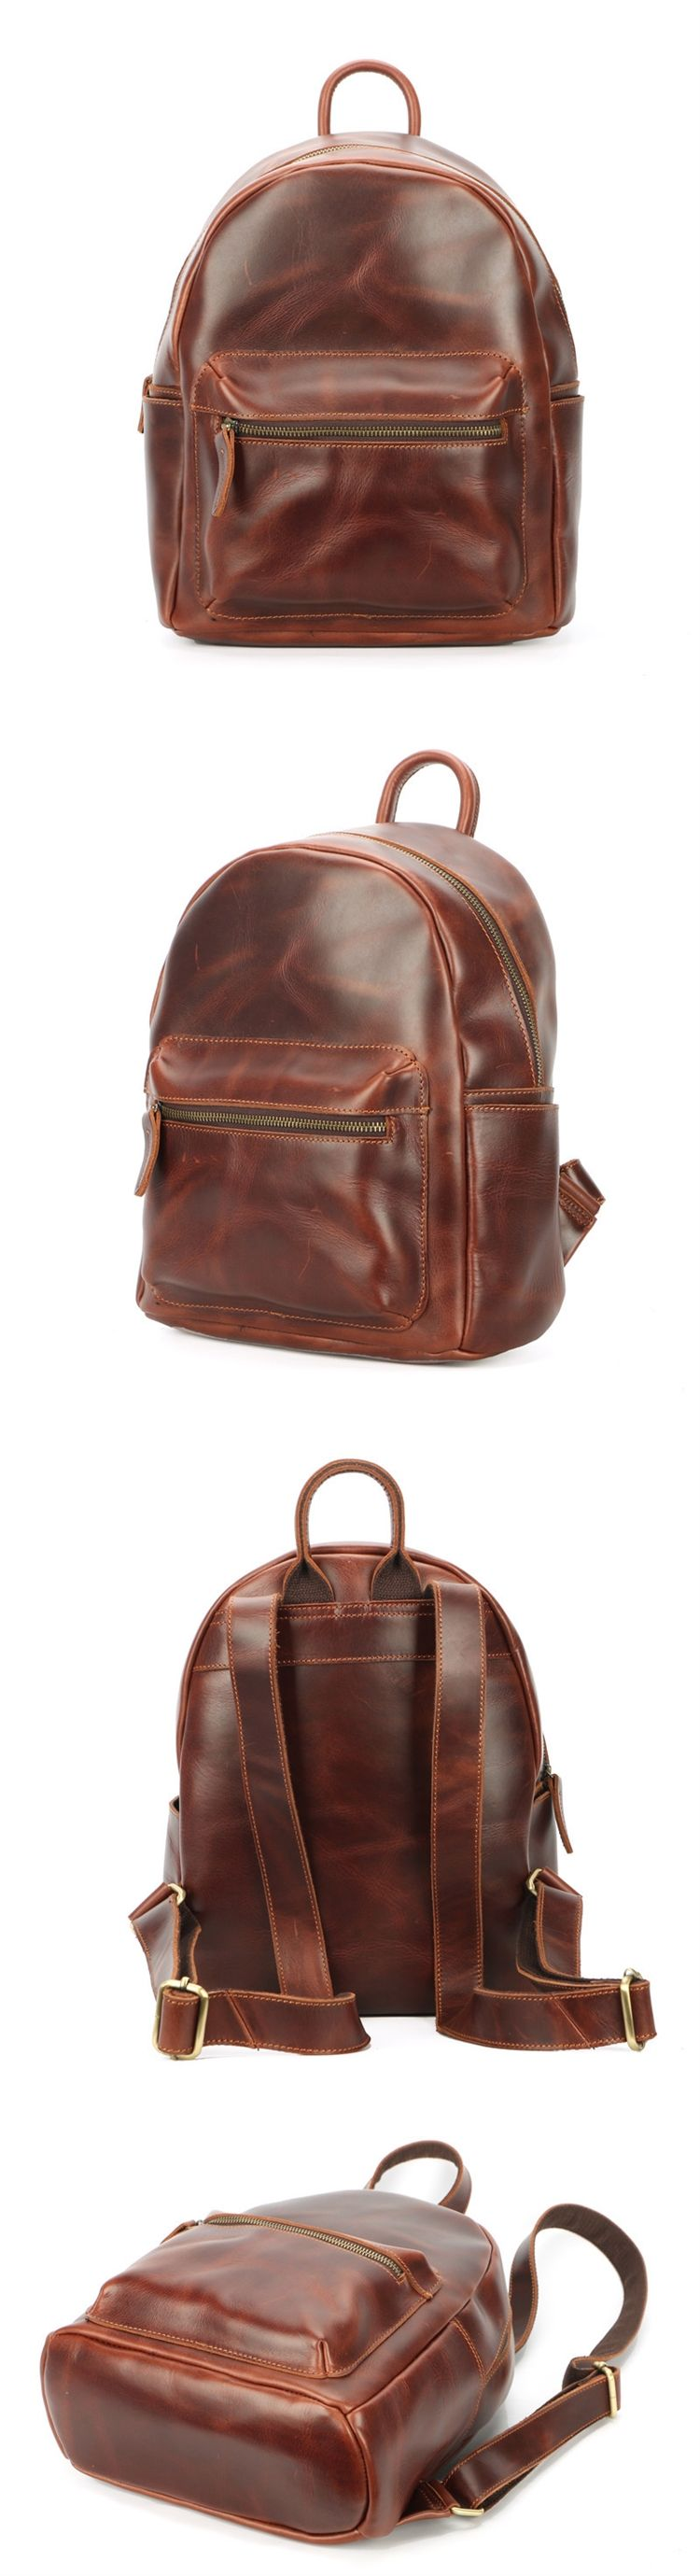 100 genuine cow leather fashion unique cute backpacks for